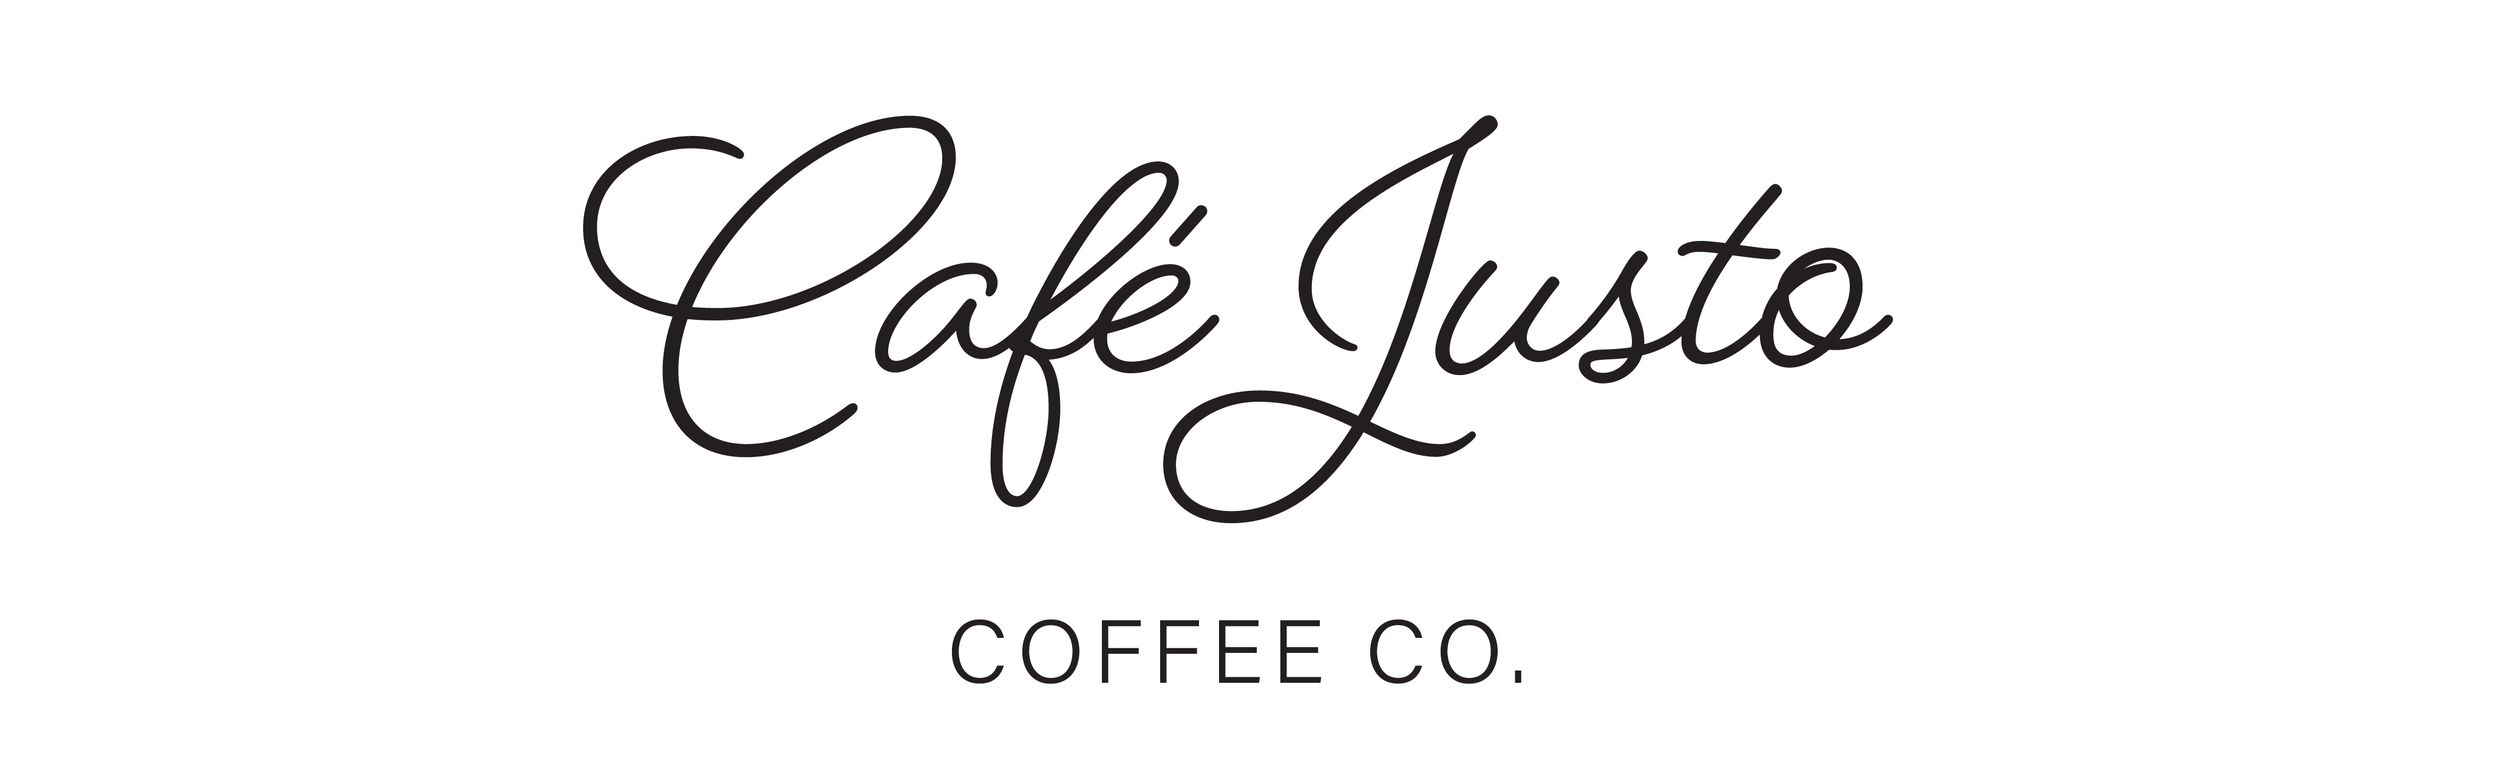 Cafe Justo fern profile-05.png